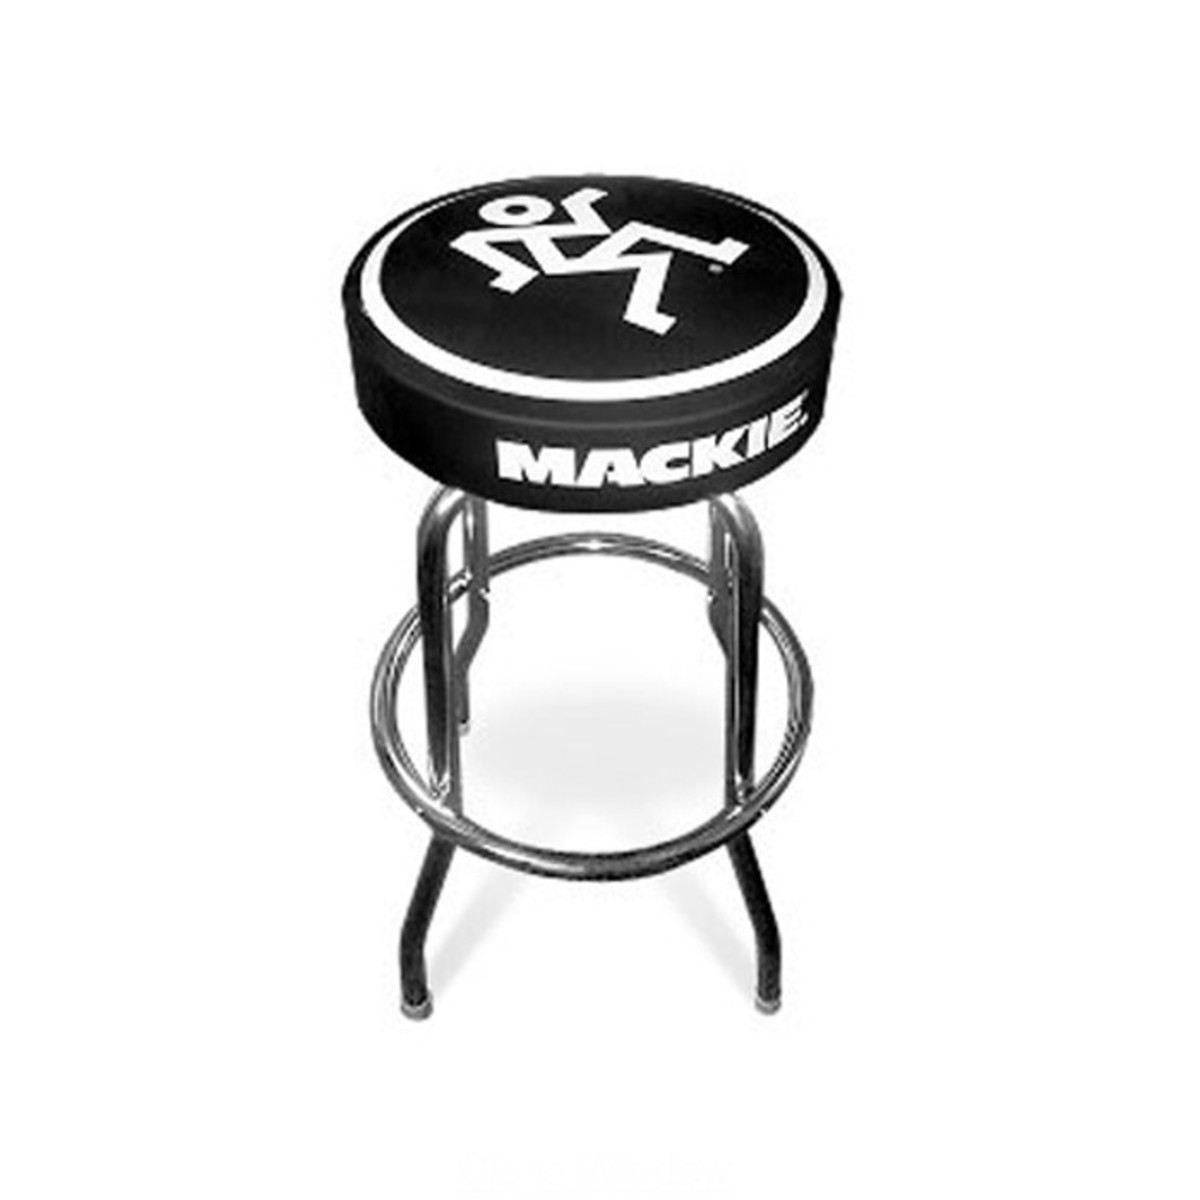 Click to view product details and reviews for Mackie Studio Stool With Mackie Logos 30 Height.